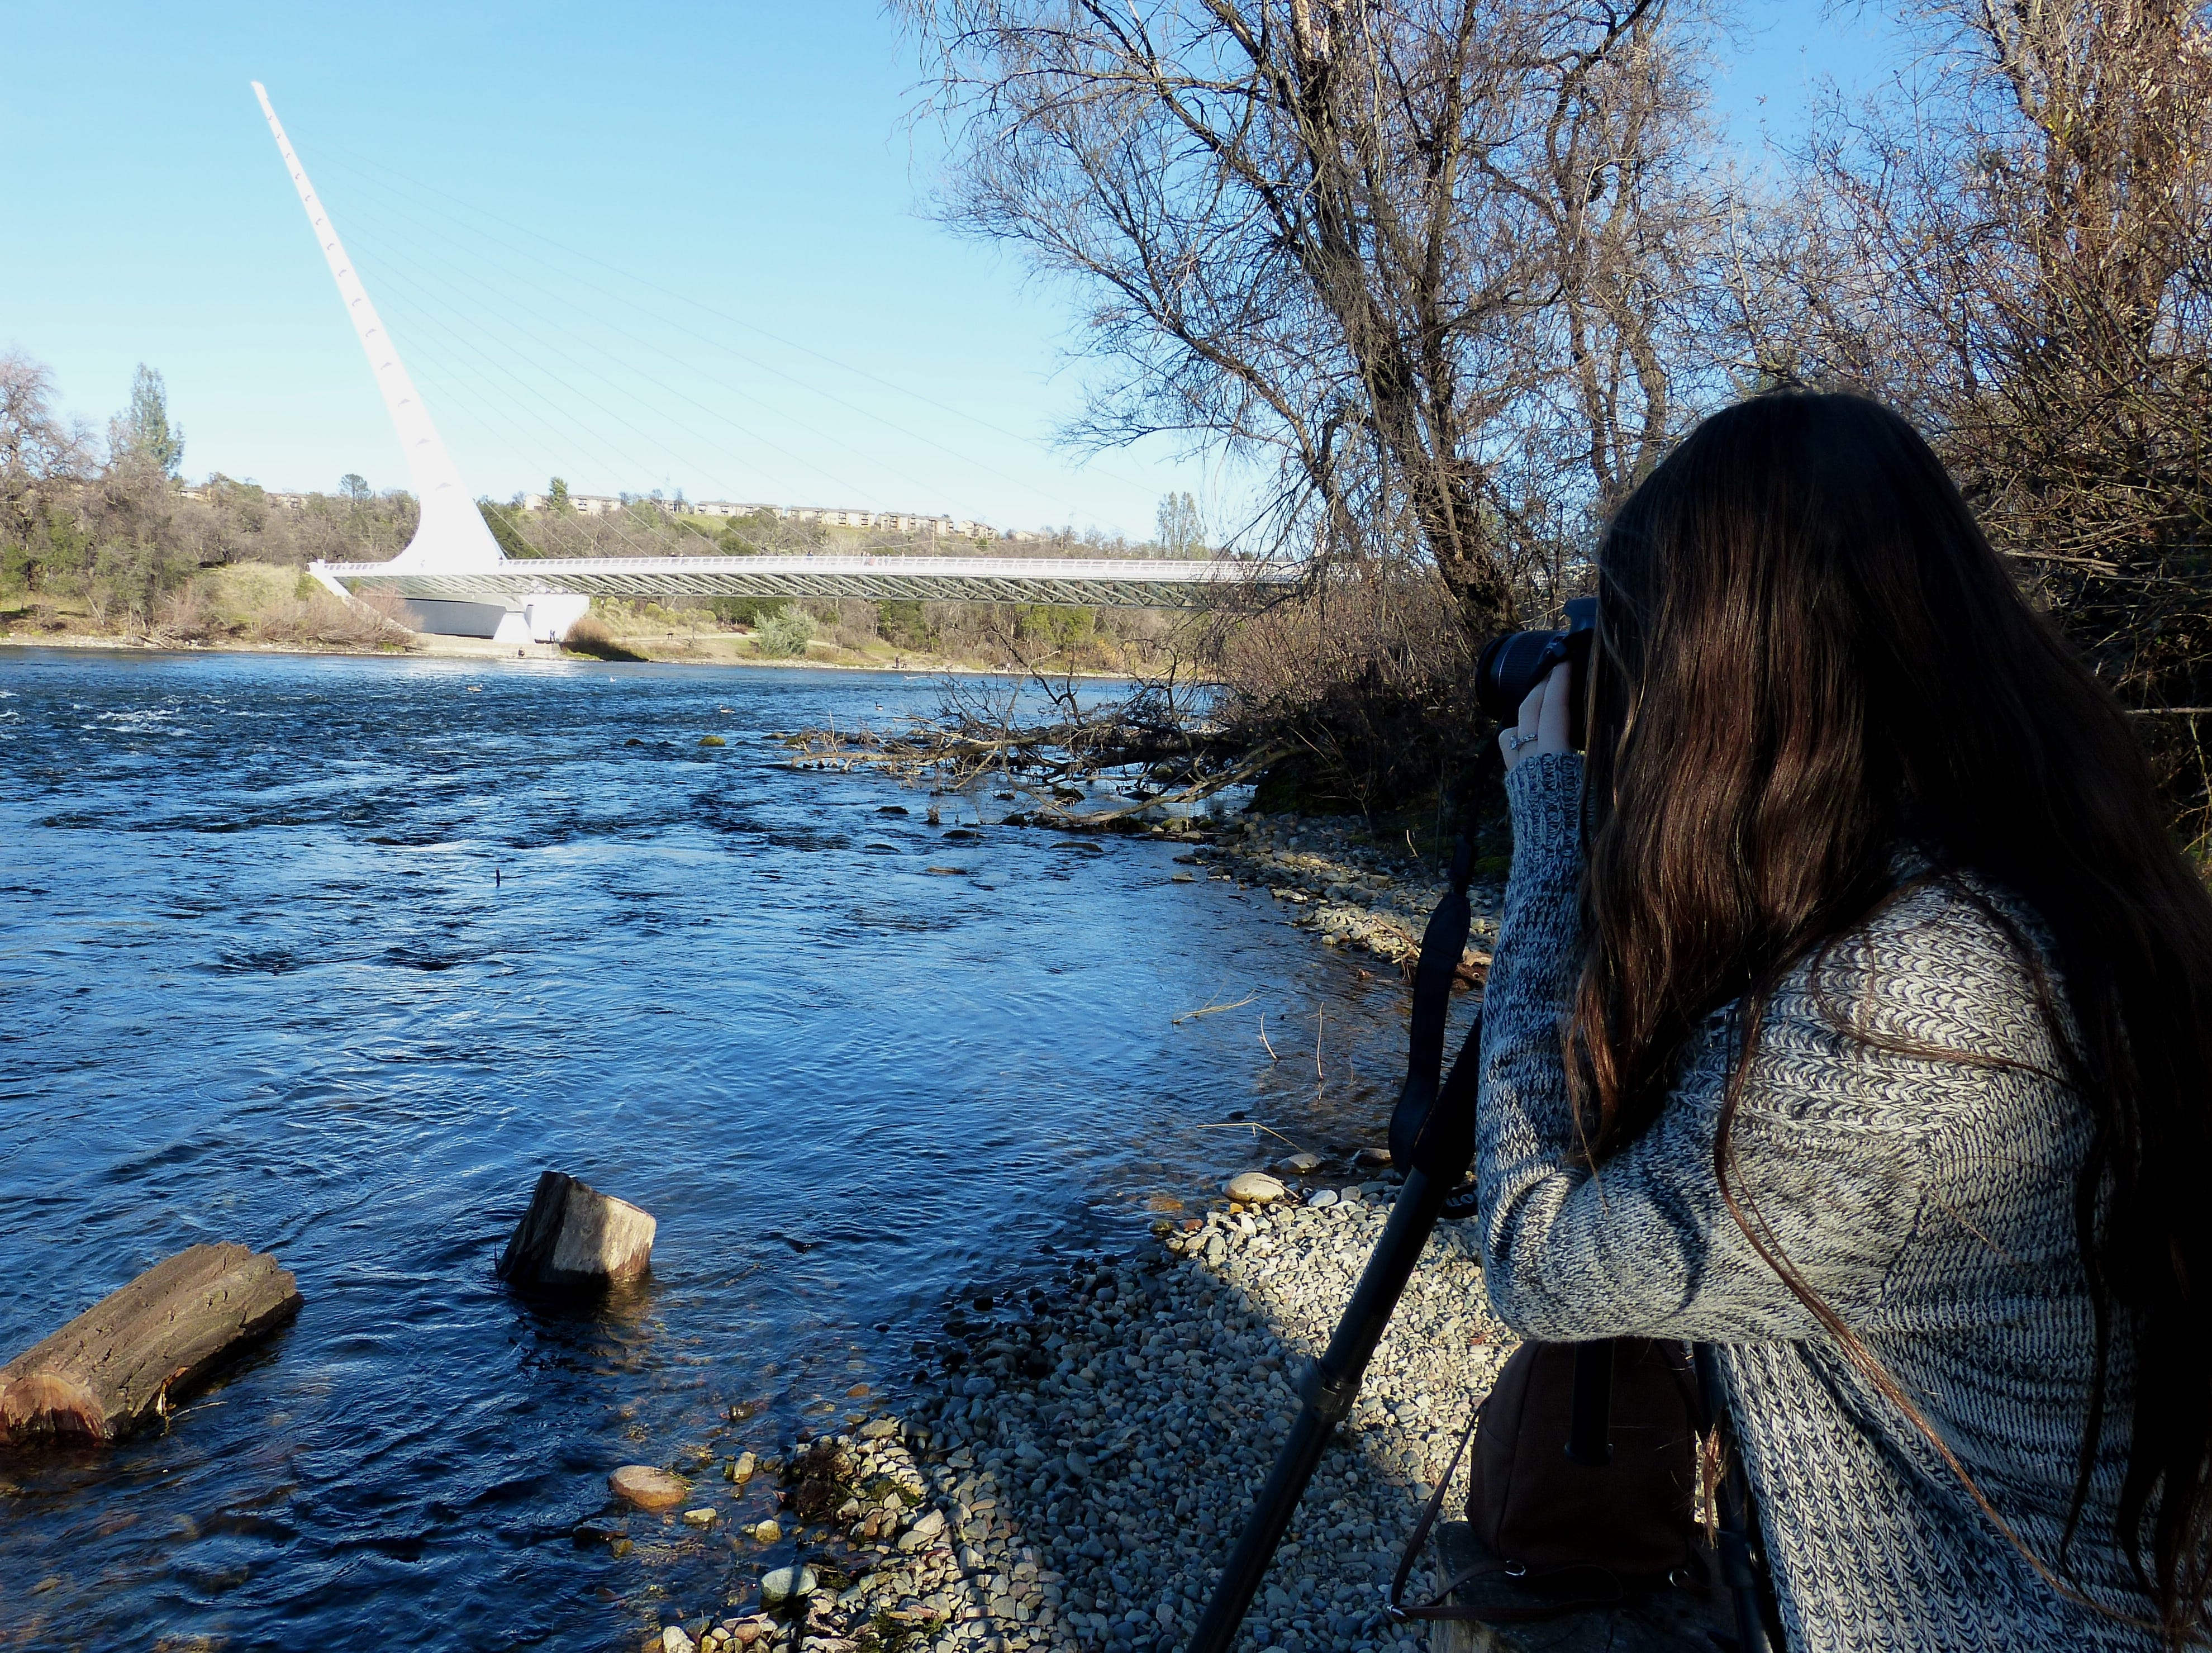 Izetta Champney, 11, of Redding spent a portion of Monday trying out a new camera she got for Christmas.